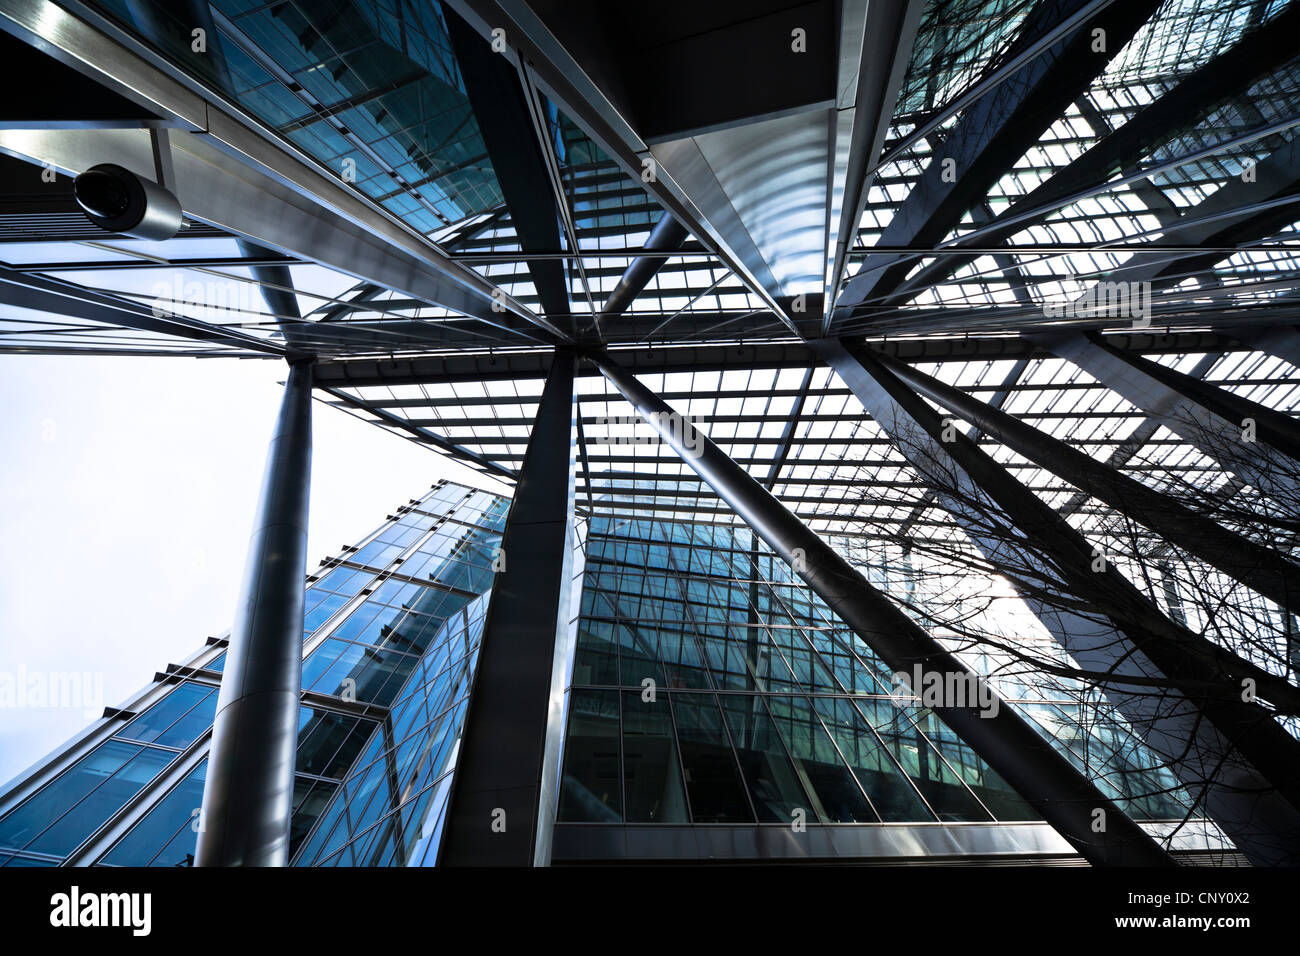 Modern Architecture In Steel And Glass In The Broadgate